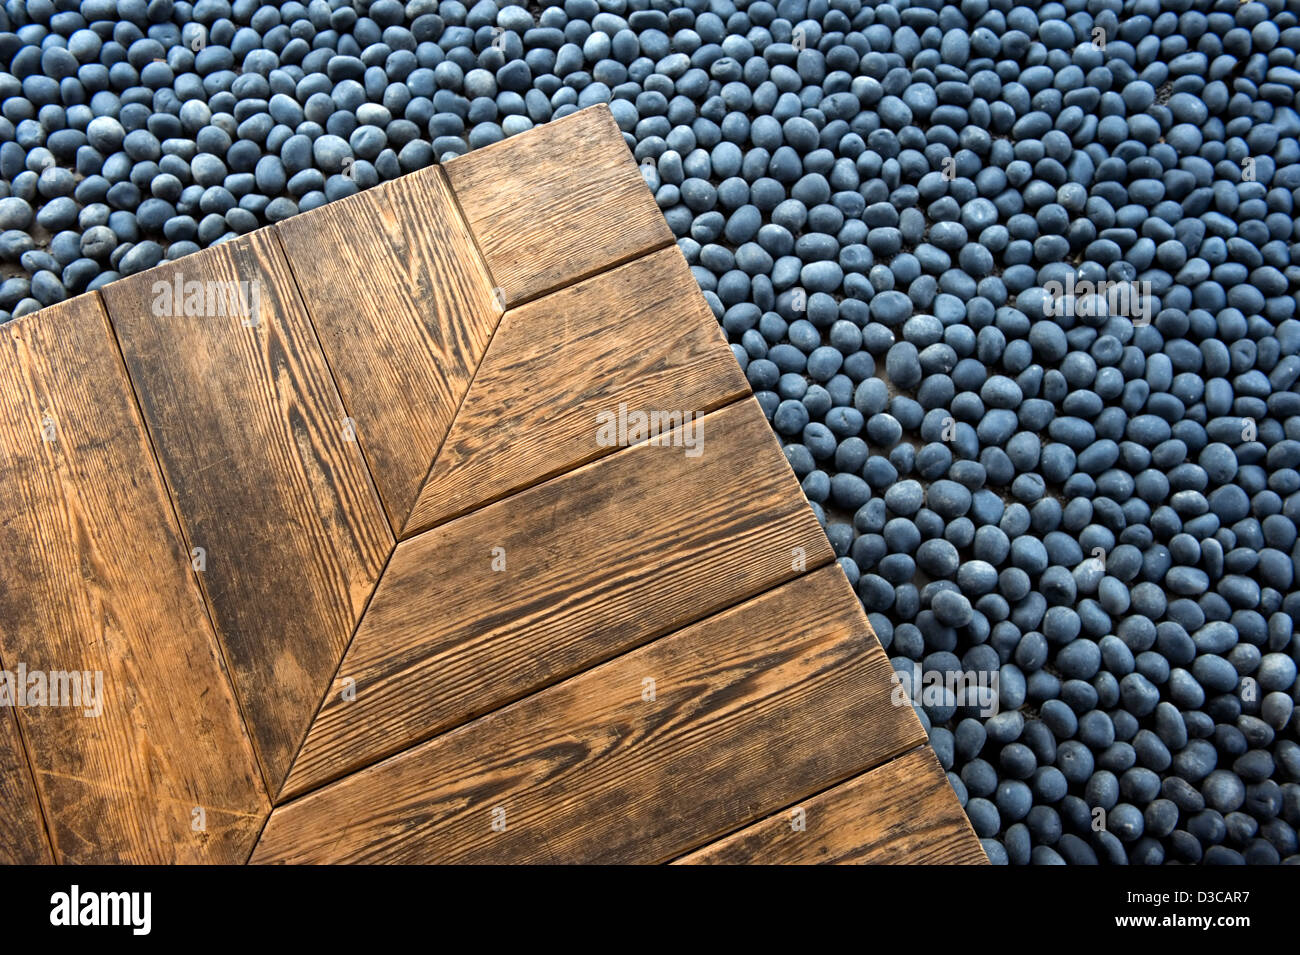 Corner of warm grainy wood veranda deck contrasts with background of smooth round blue river rock in Japanese garden - Stock Image